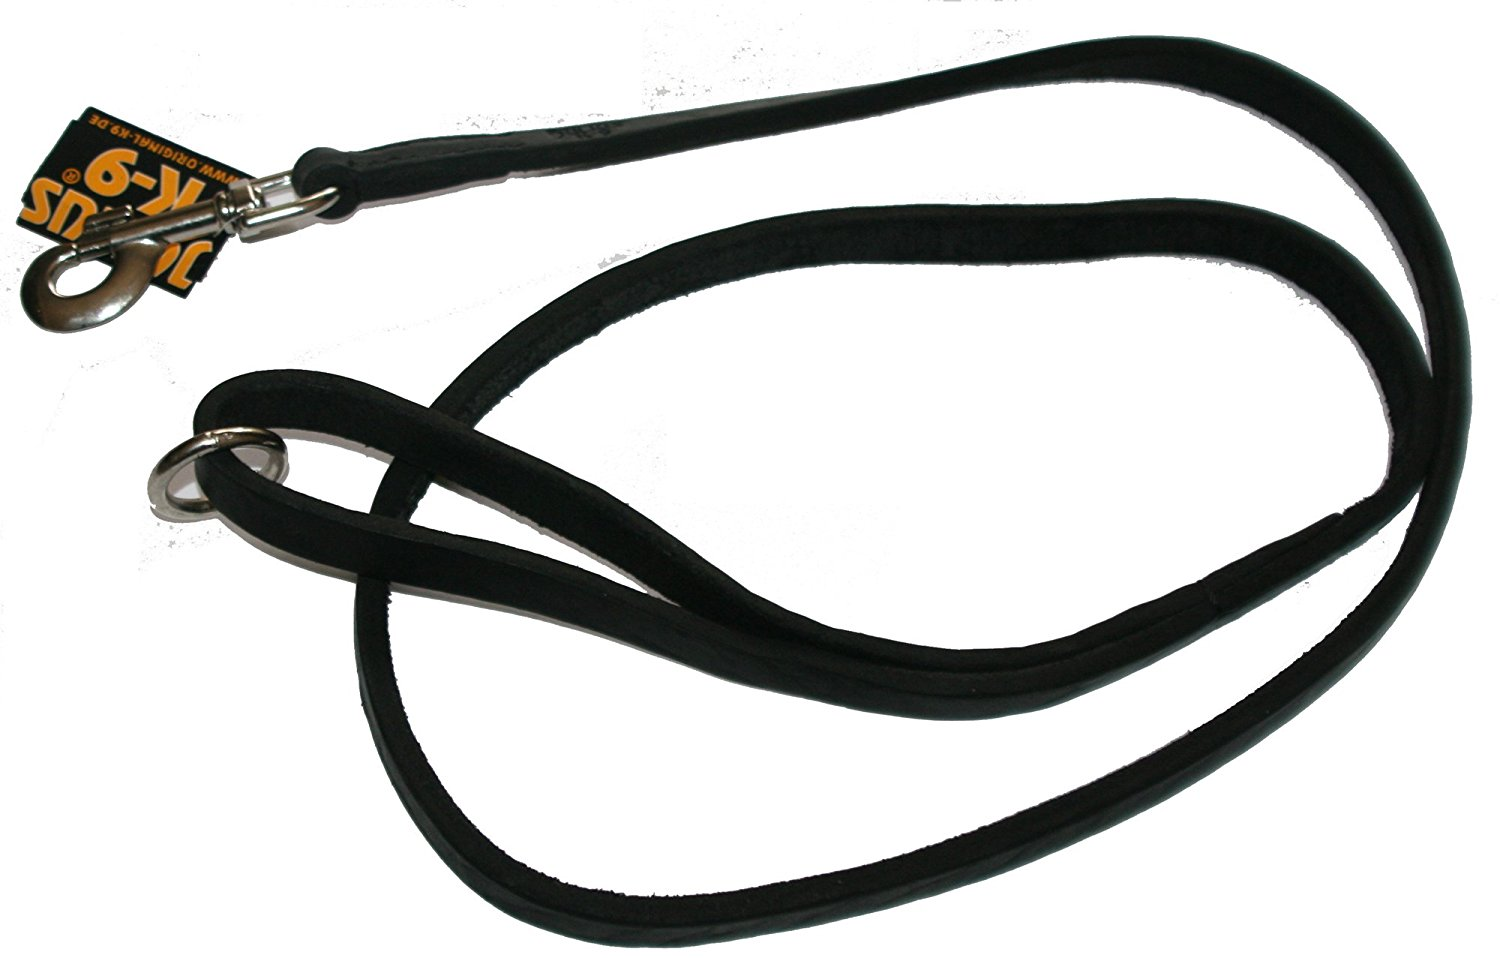 leather leash 1 5 m   u00d8 16 mm  with handle  with o